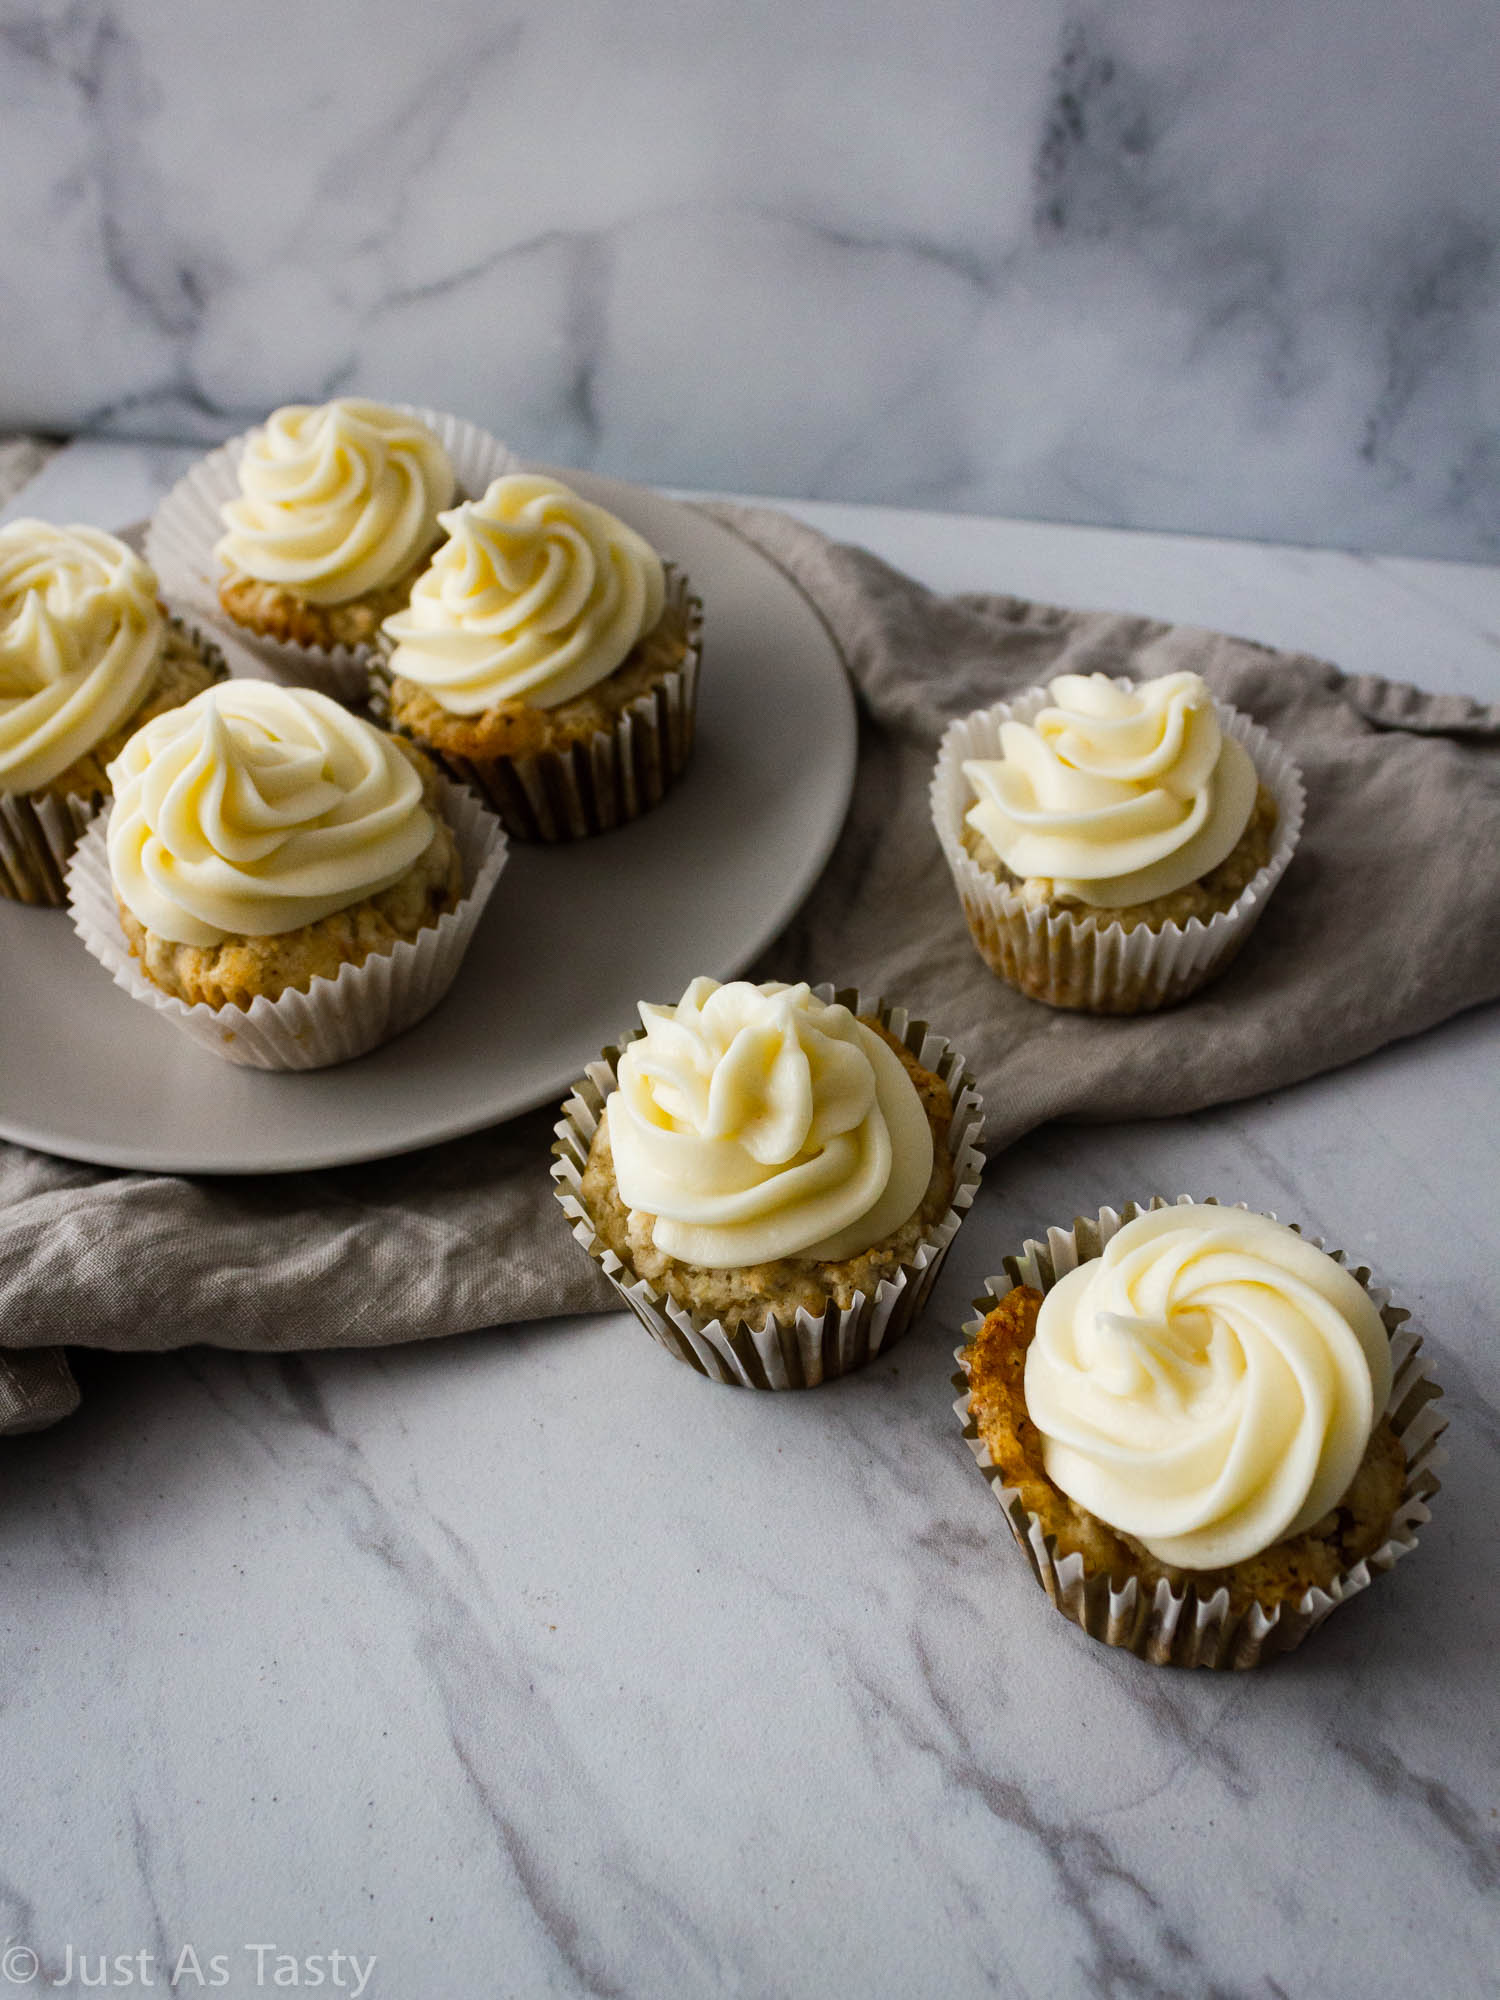 Frosted banana cupcakes.